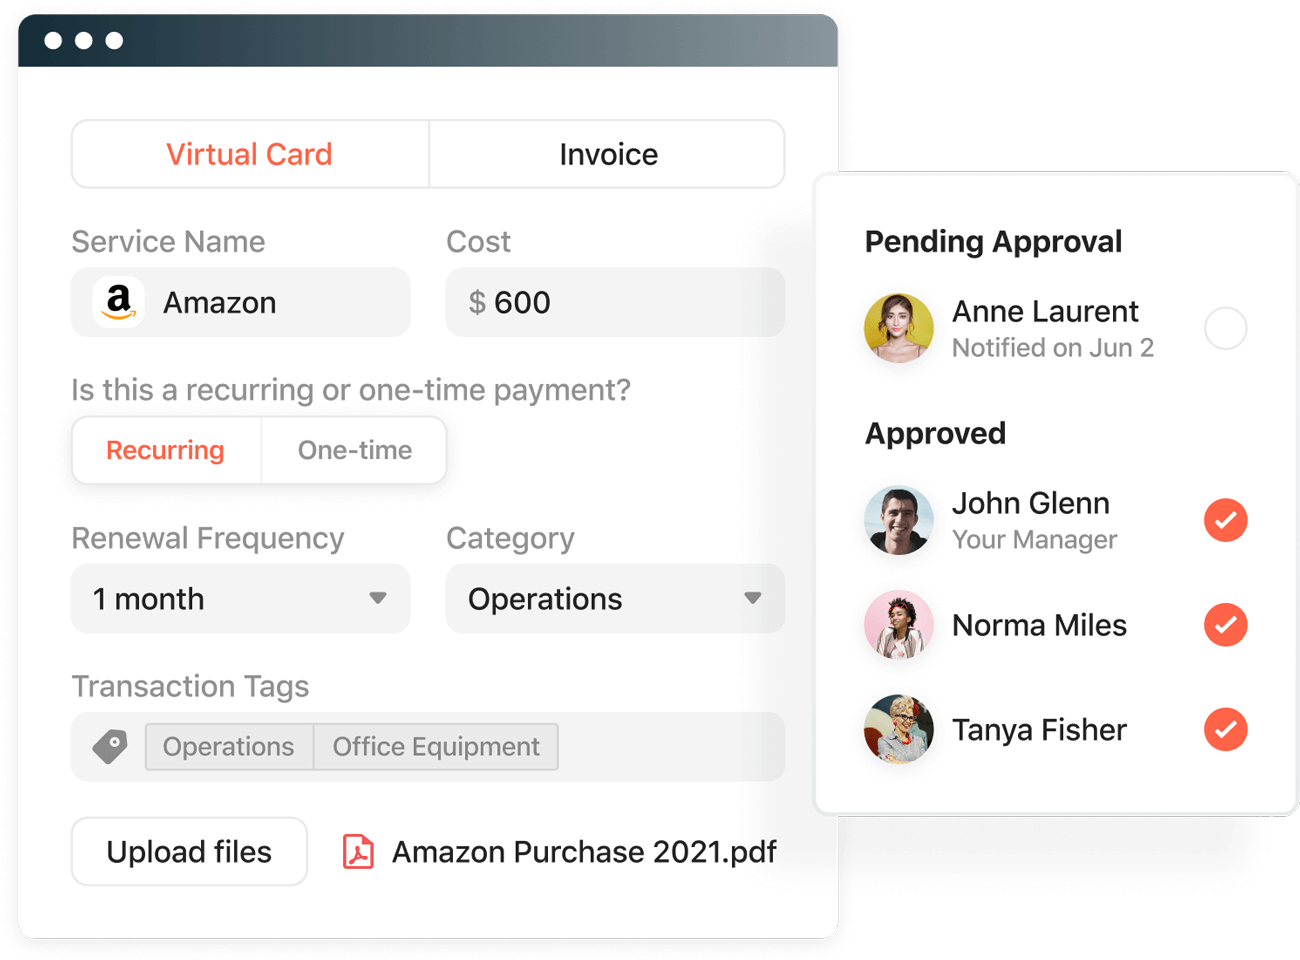 Airbase spend management allows employees to request and for managers to approve spend directly in Slack.